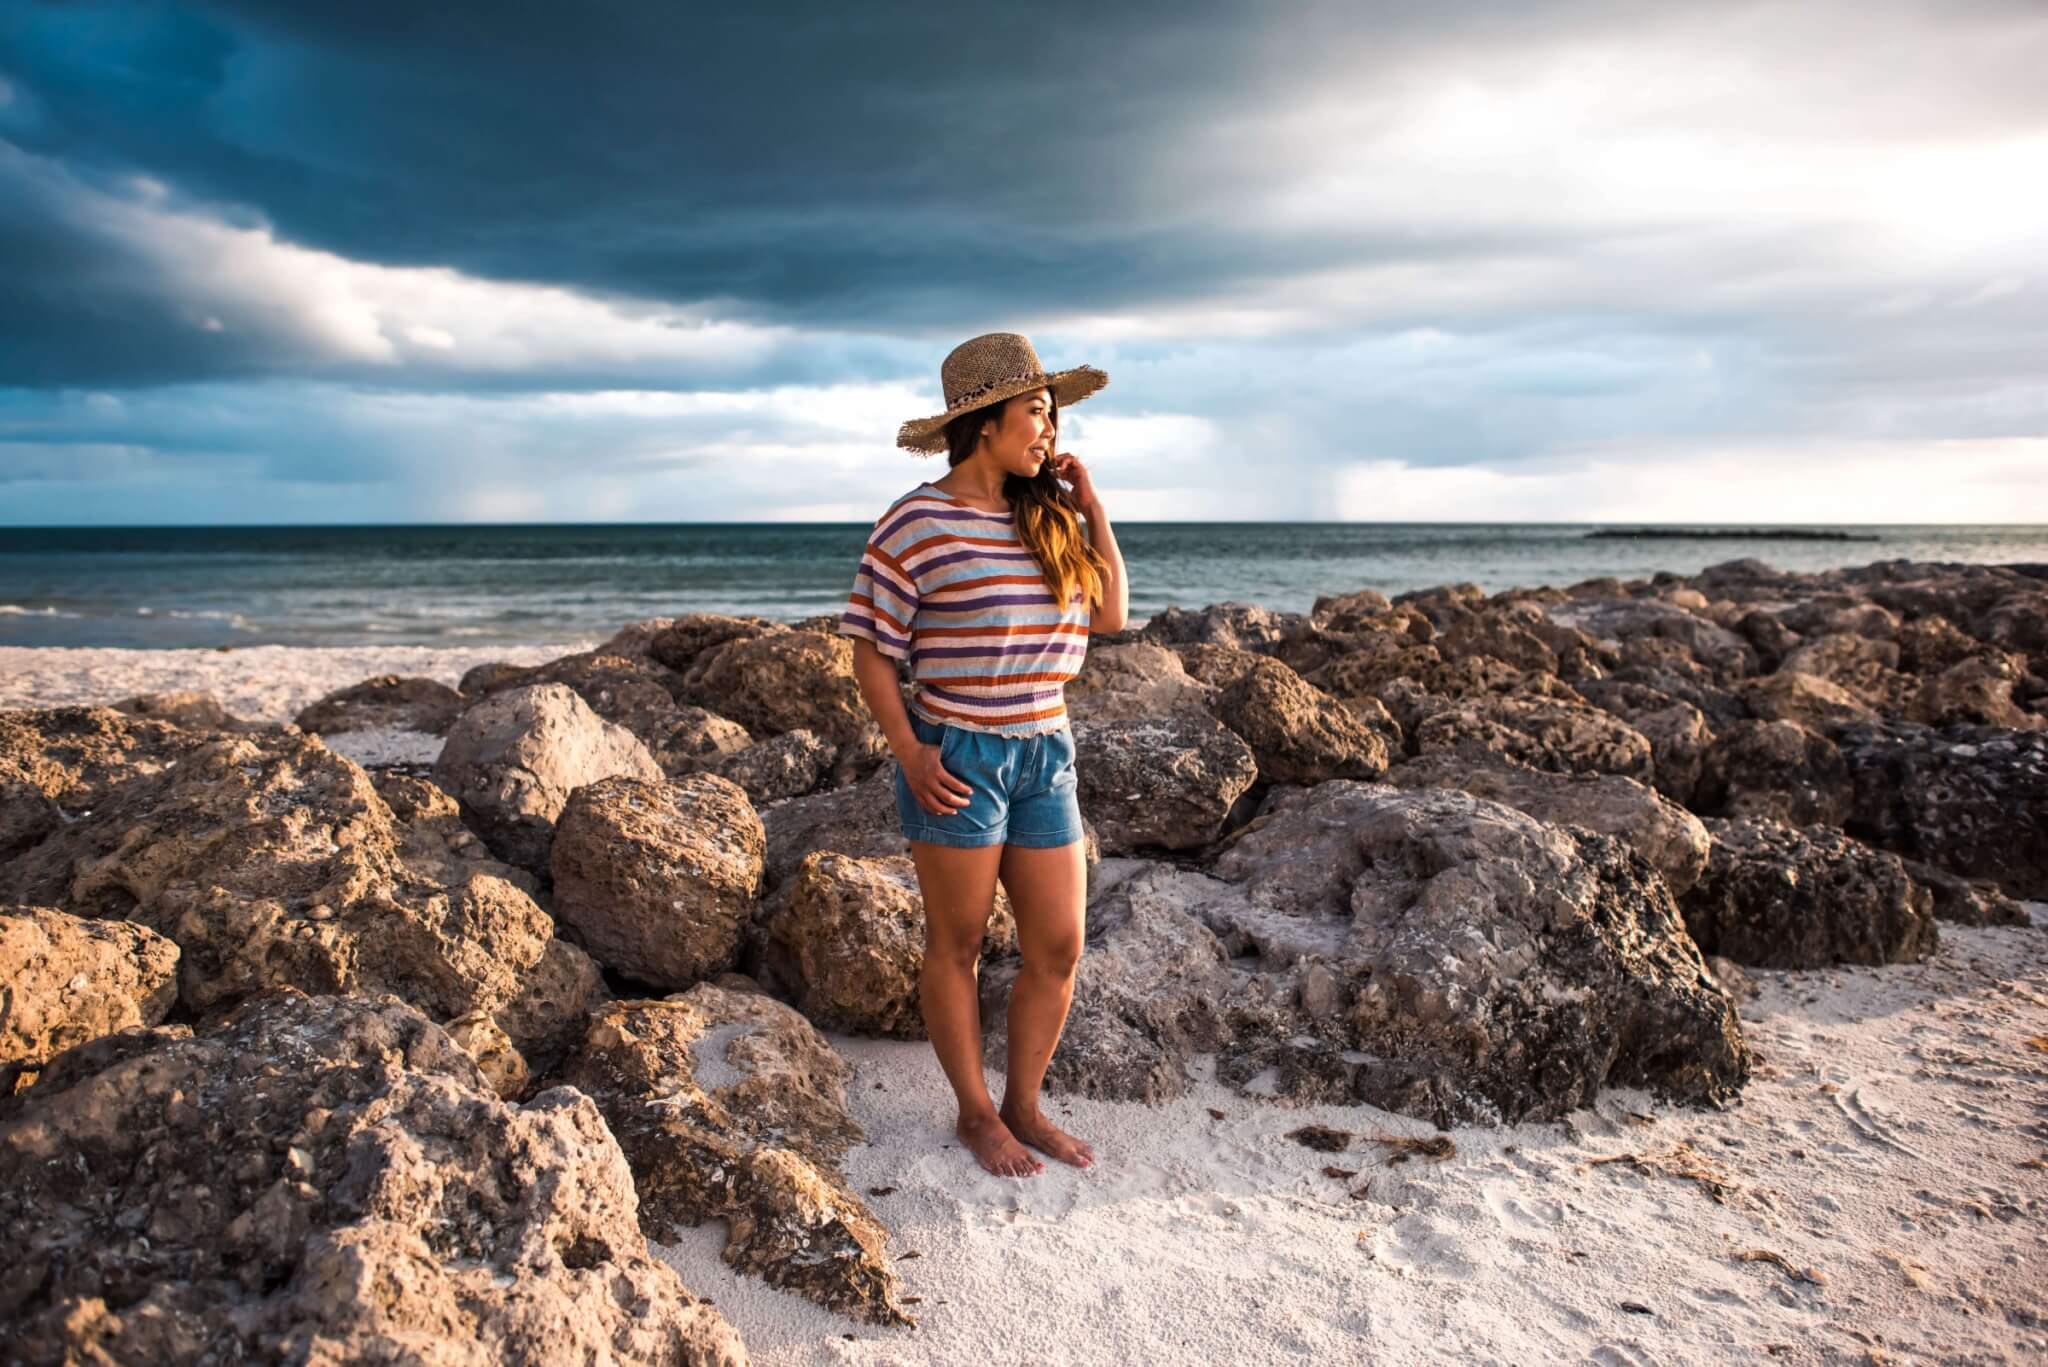 what to wear to florida, what to wear to florida in spring, springwear in florida, florida fashion, florida trends, how to pack for florida, what to wear in florida, how to pack for a trip to florida, what to pack for florida, florida vacation outfits,